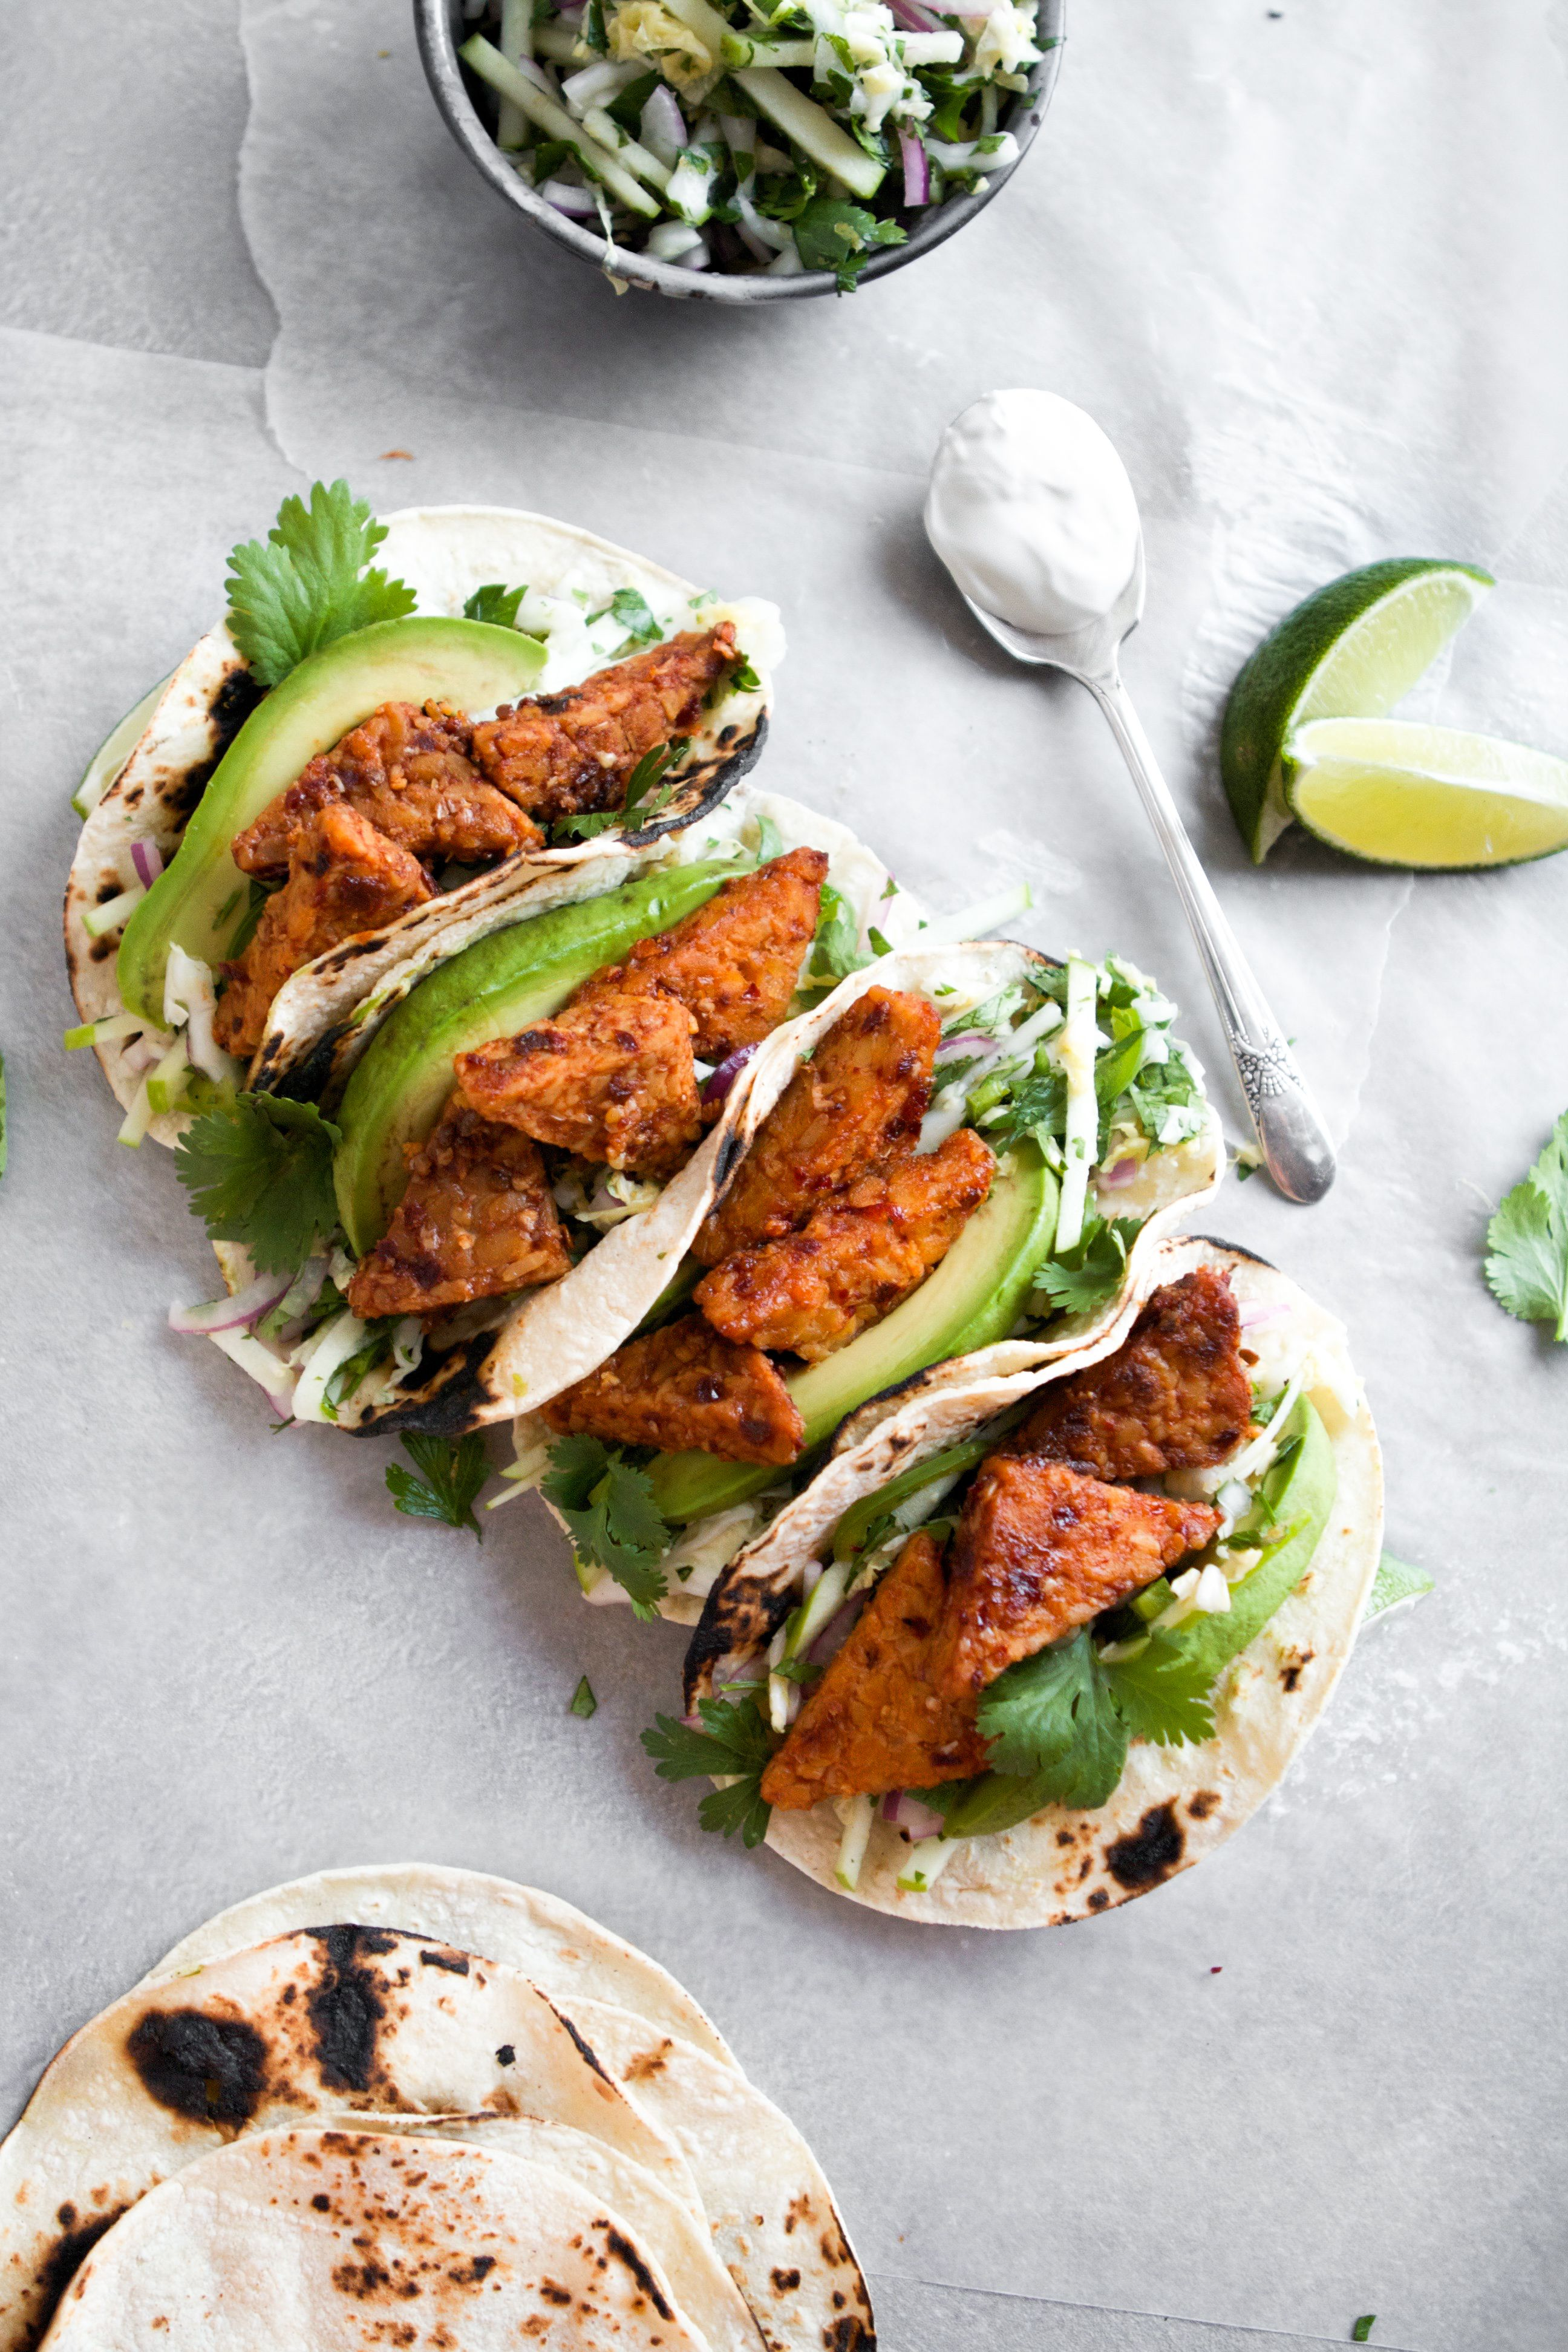 Spicy Chipotle Tempeh Tacos With Green Apple Slaw